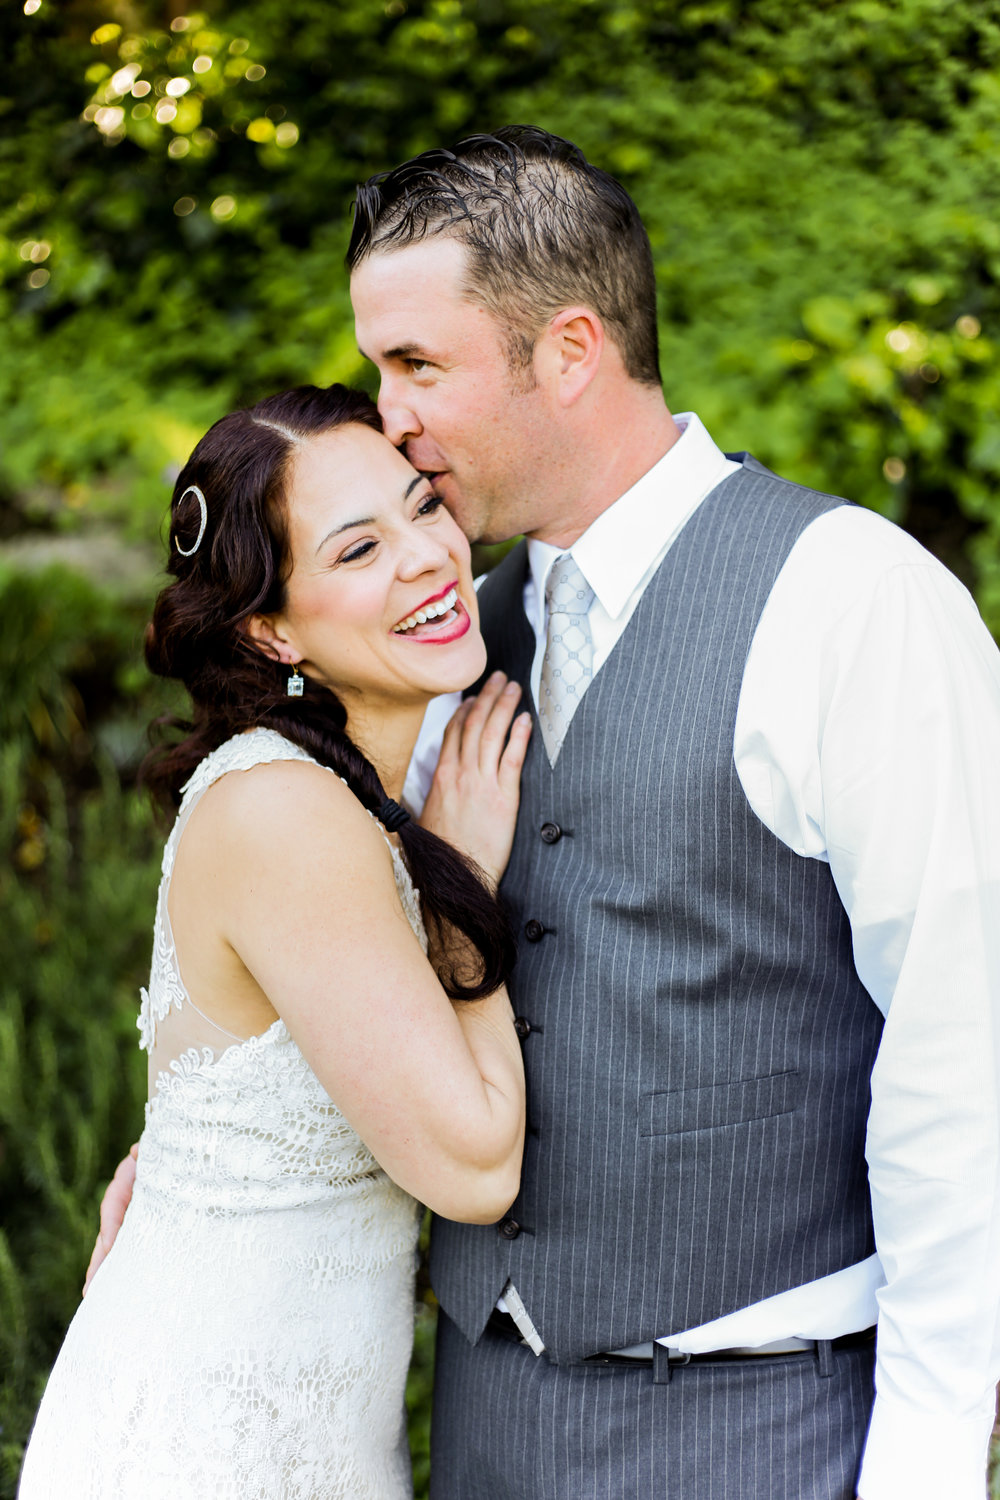 alexandra-rice-photography-shadowbrook-capitola-santa cruz-wedding-bride-groom-portrait-outdoors-laughing-garden.jpg